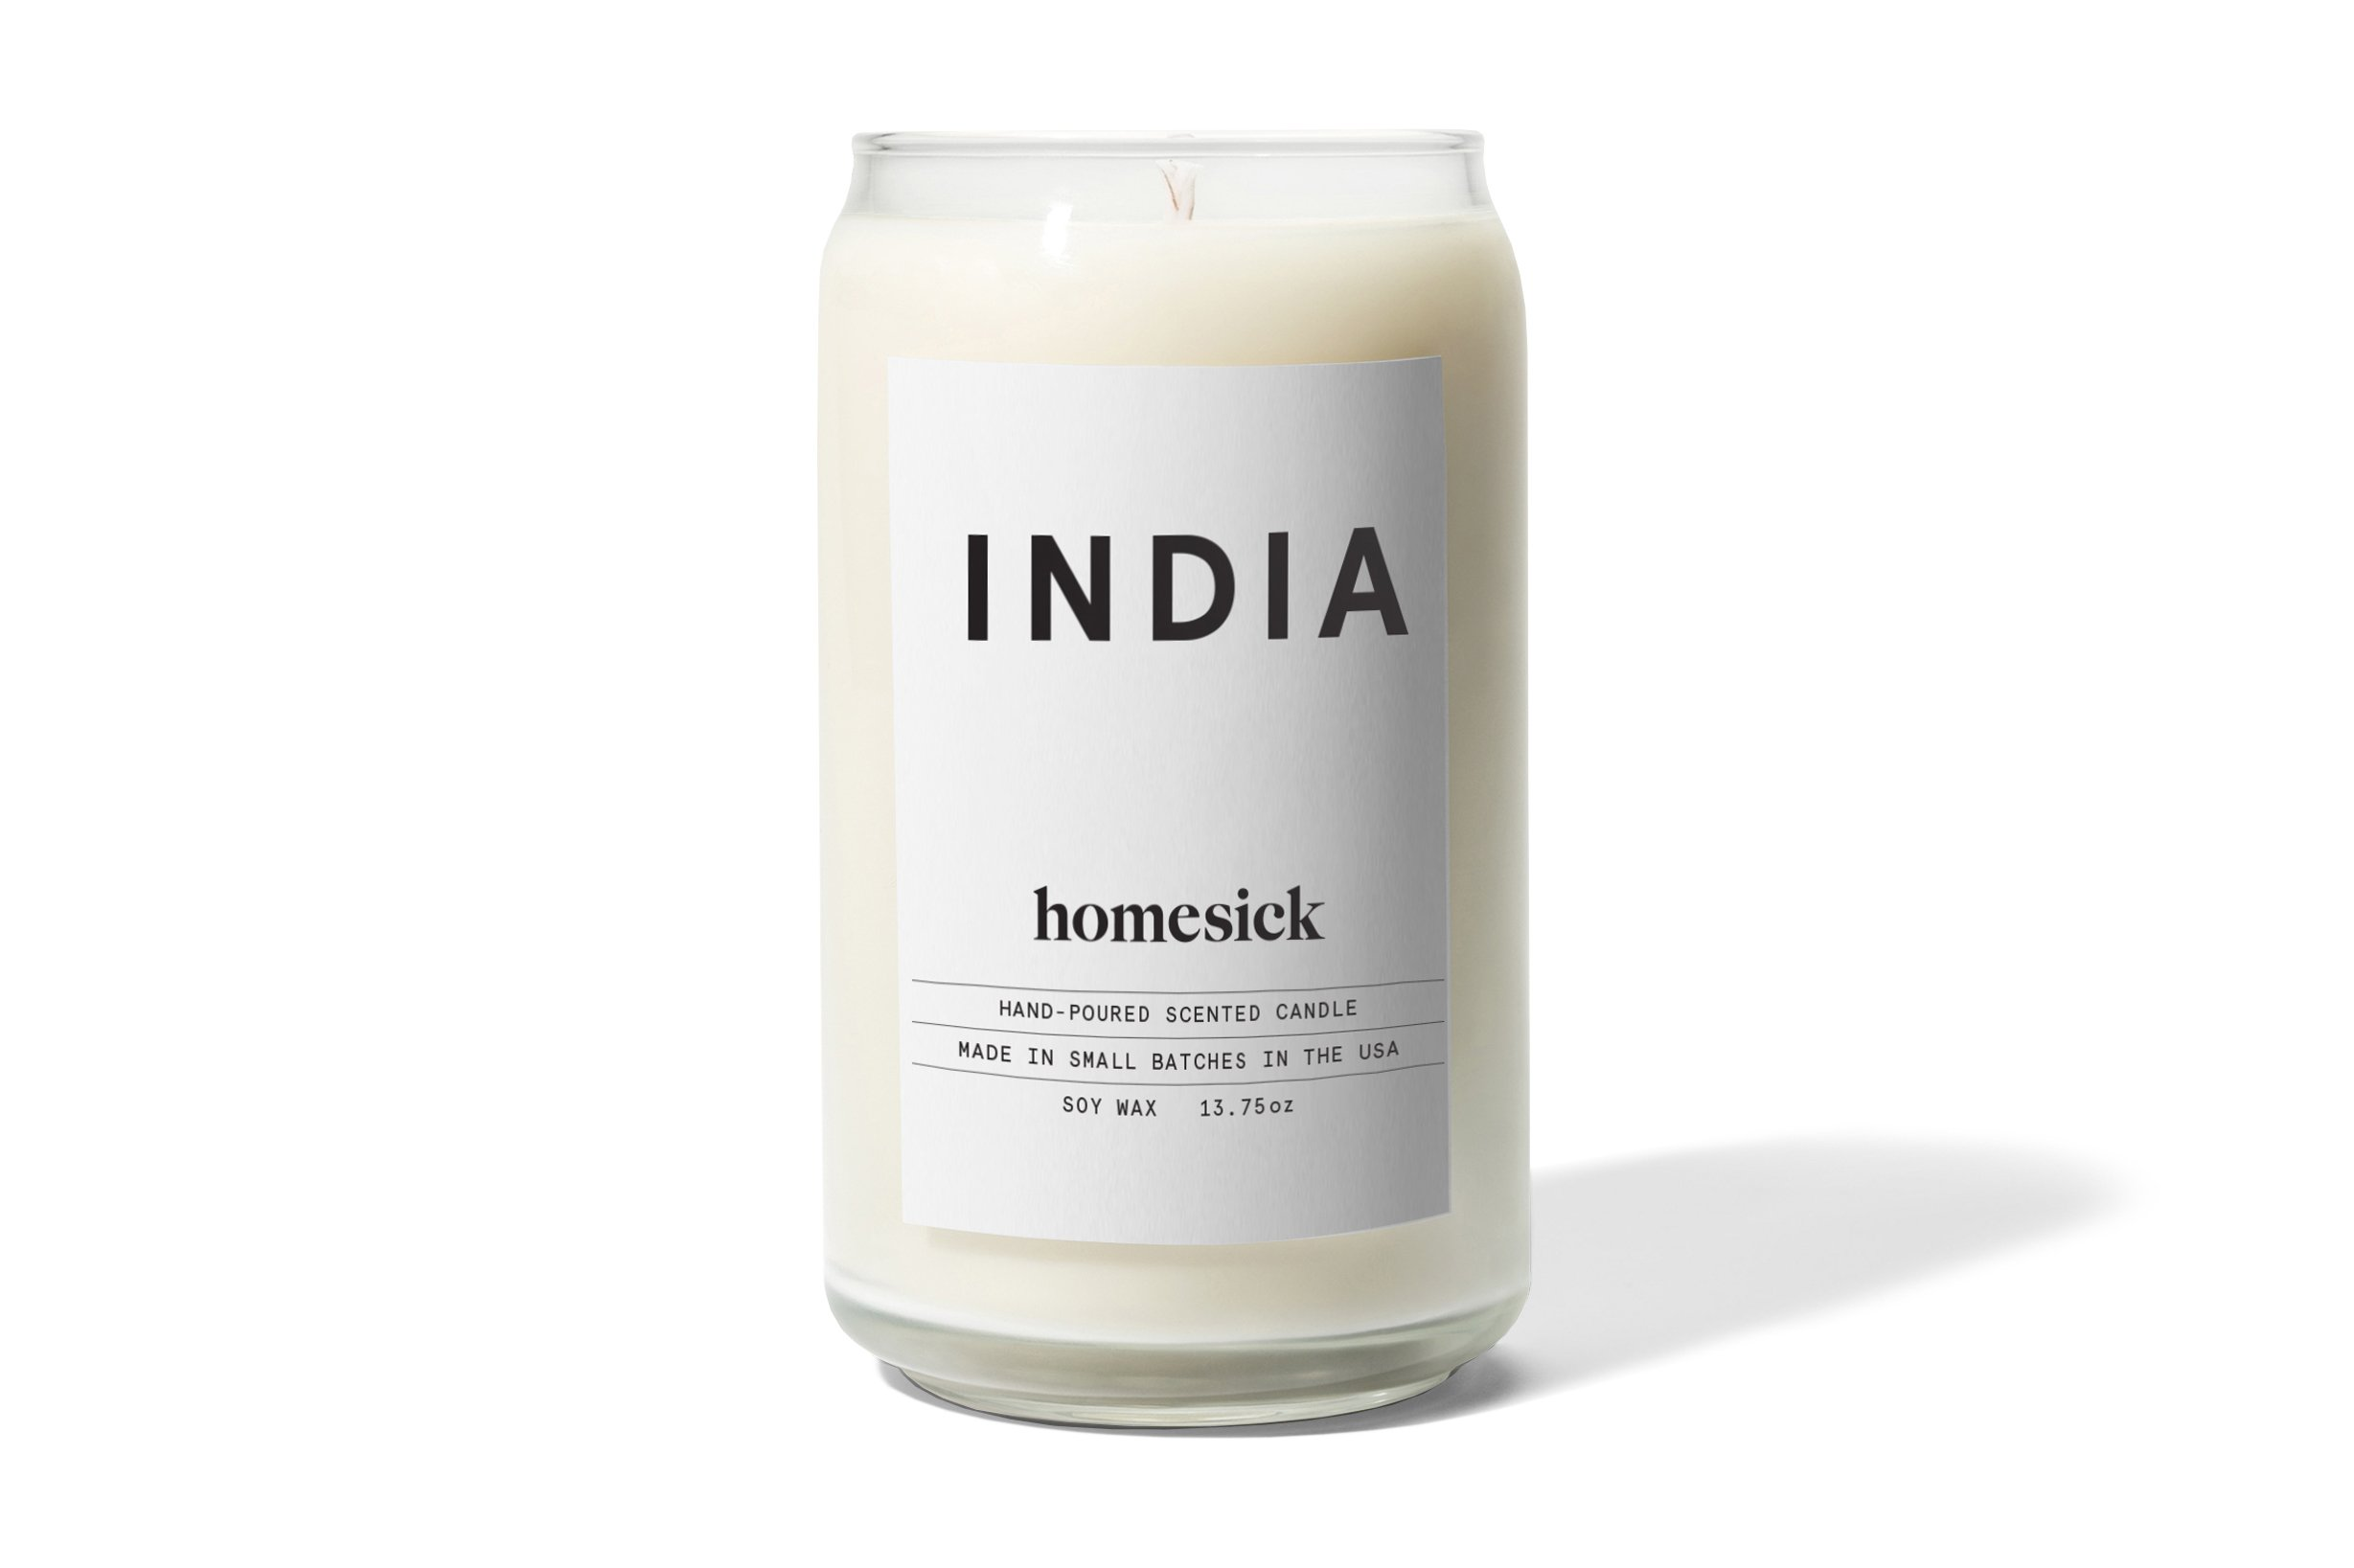 Homesick Scented Candle, India